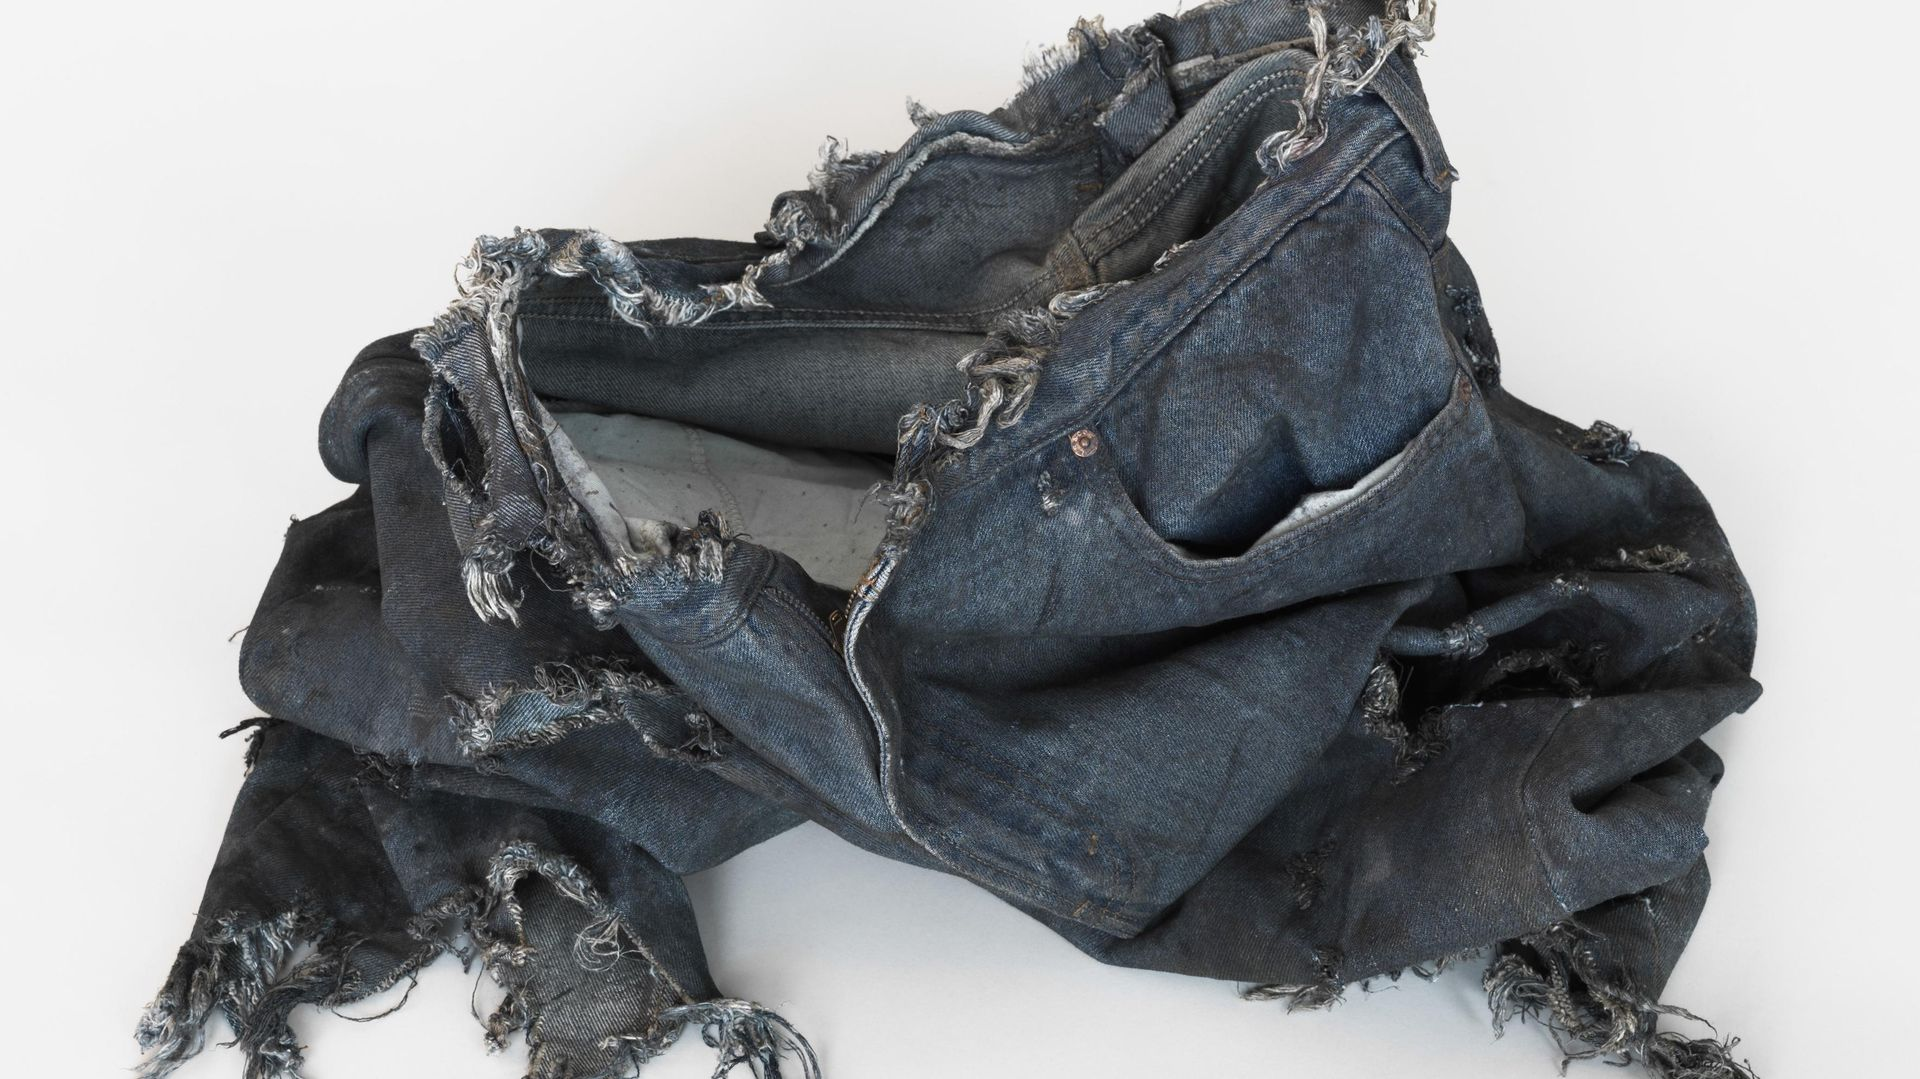 Monika Stricker: THE INCREDIBLE HULK 2008, Bruce Banner (Edward Norton) Ripped Test Jeans, 2013, Mischtechnik, Maße variabel, Courtesy: Clages Köln